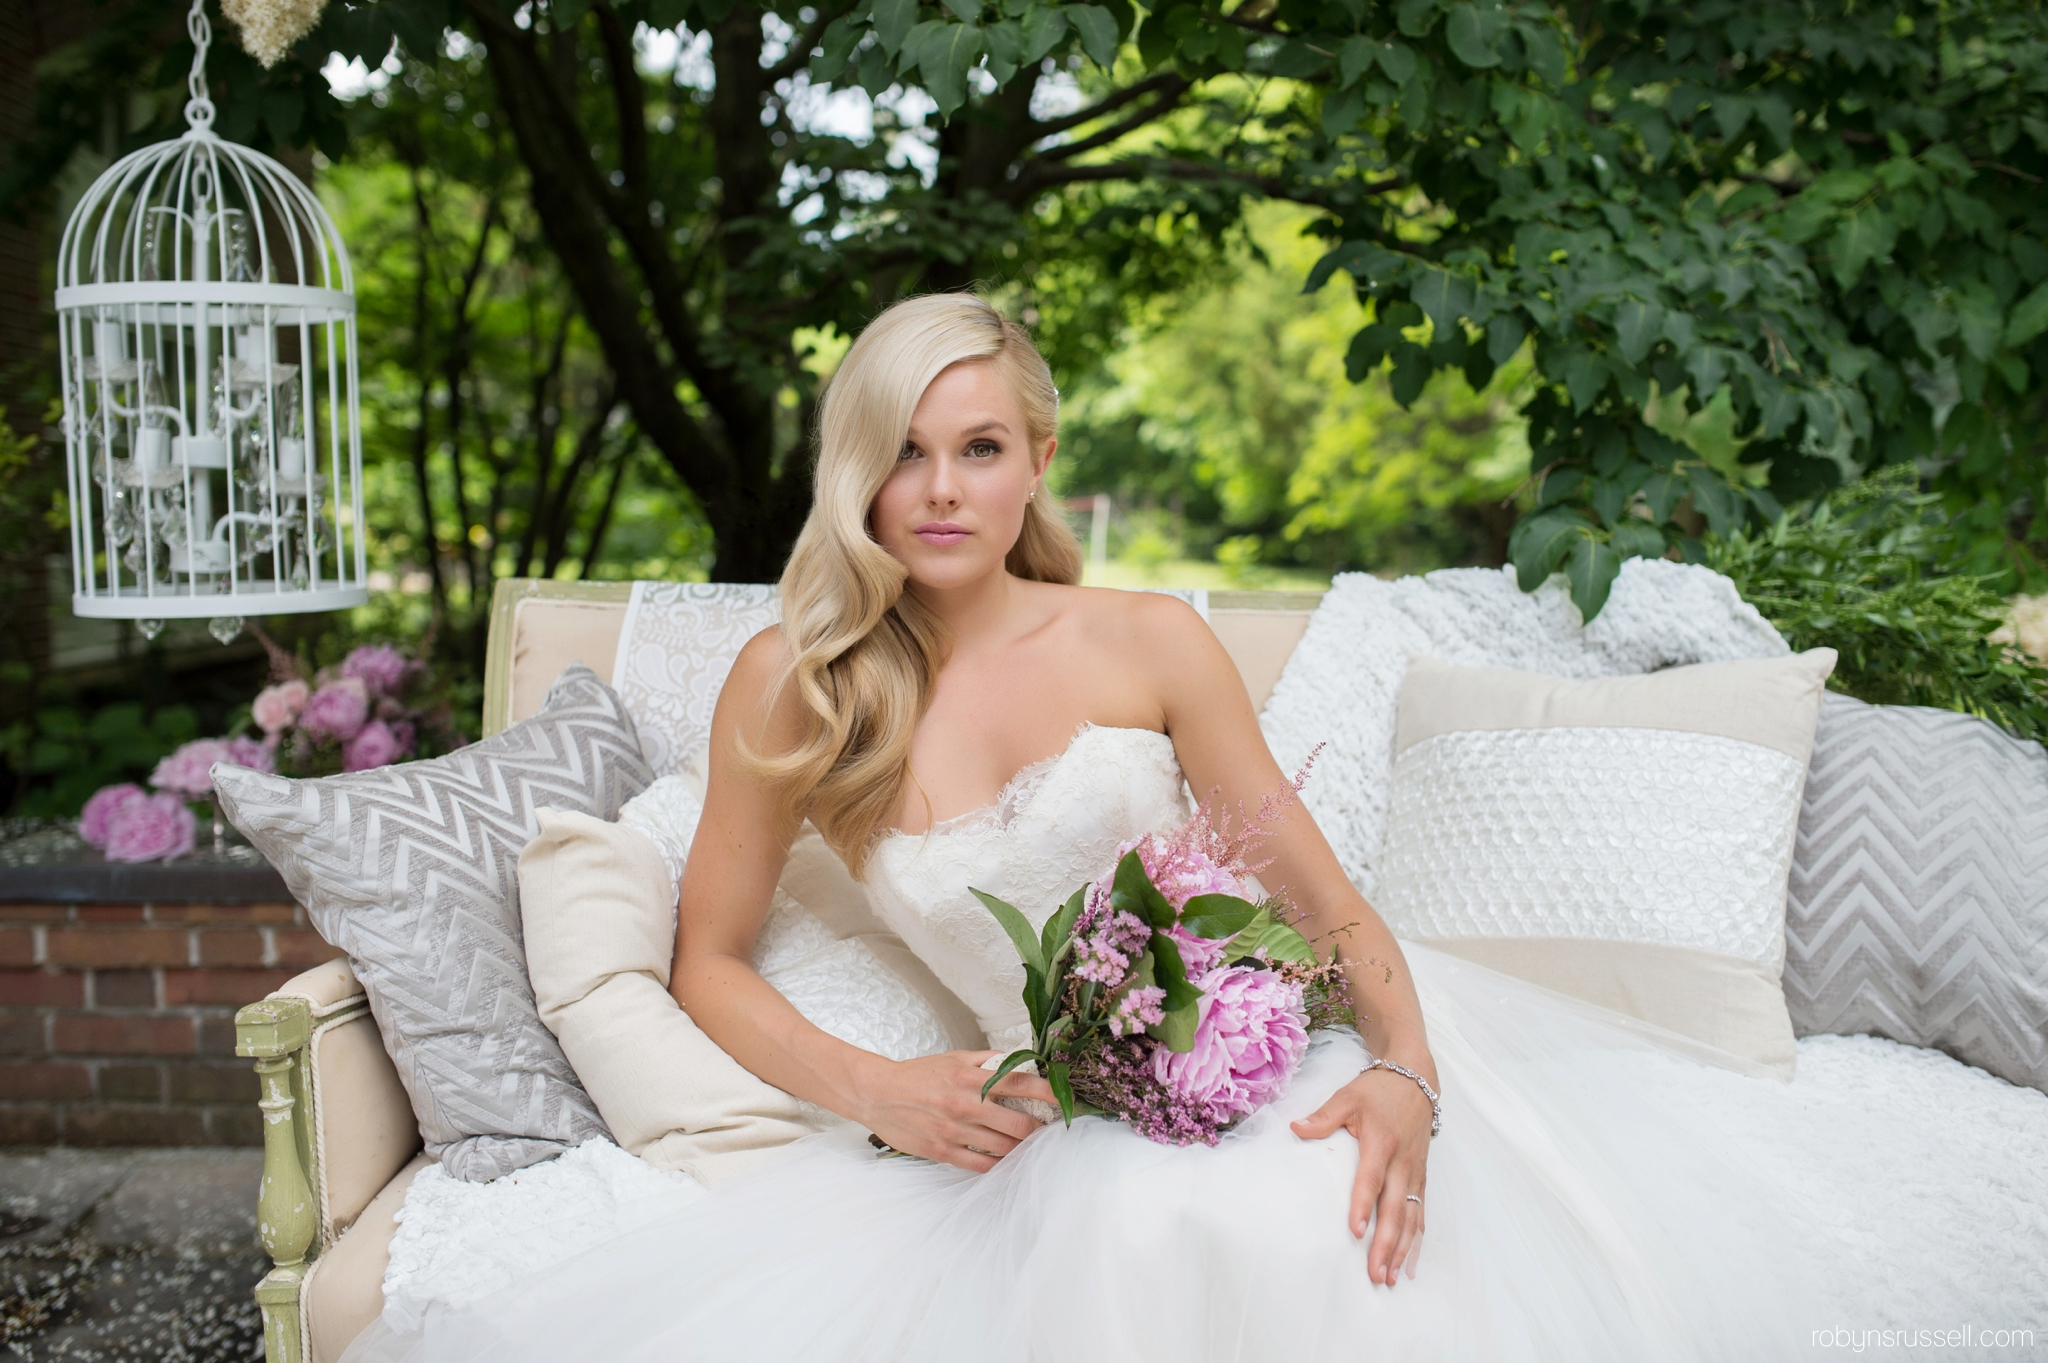 5-carly-beautiful-bride-pink-summer-peonies-gorgeous-bridal-bouquet.jpg